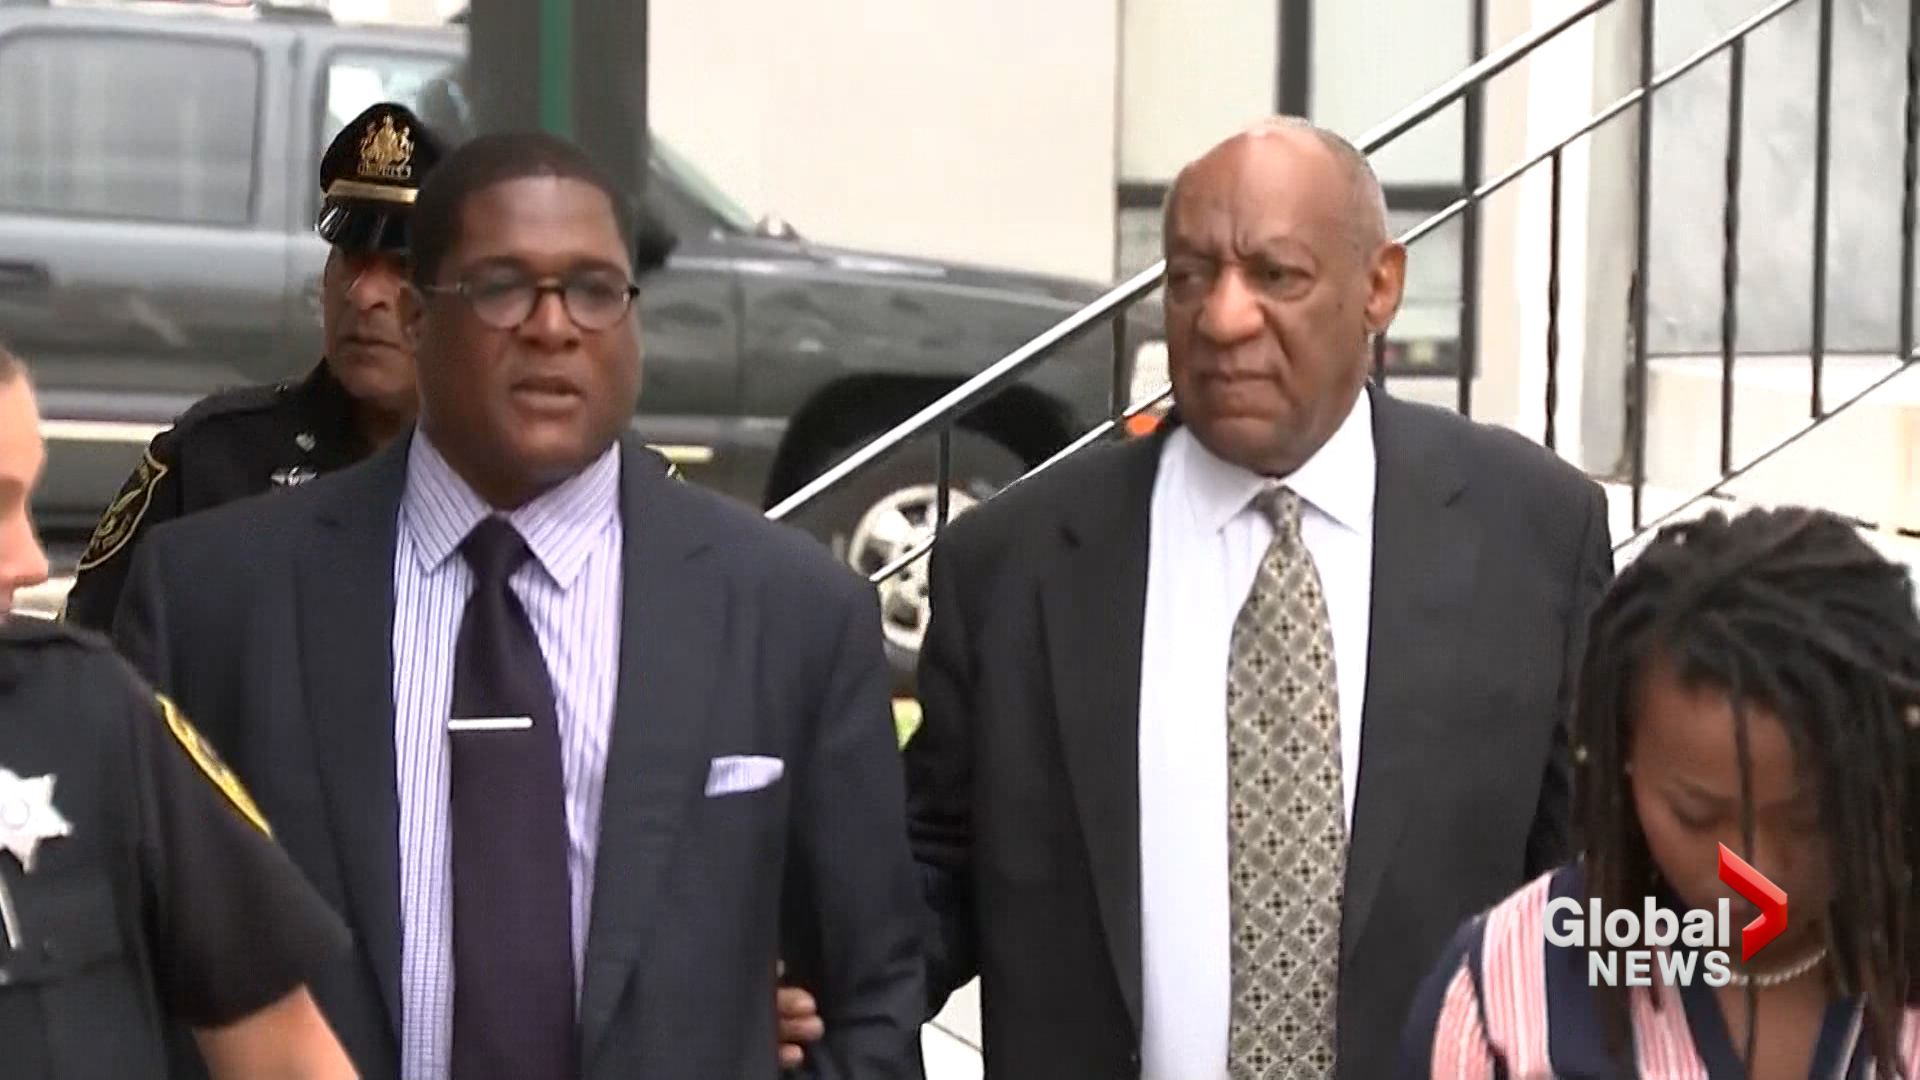 Judge says keep deliberating after jury deadlocks in Cosby trial